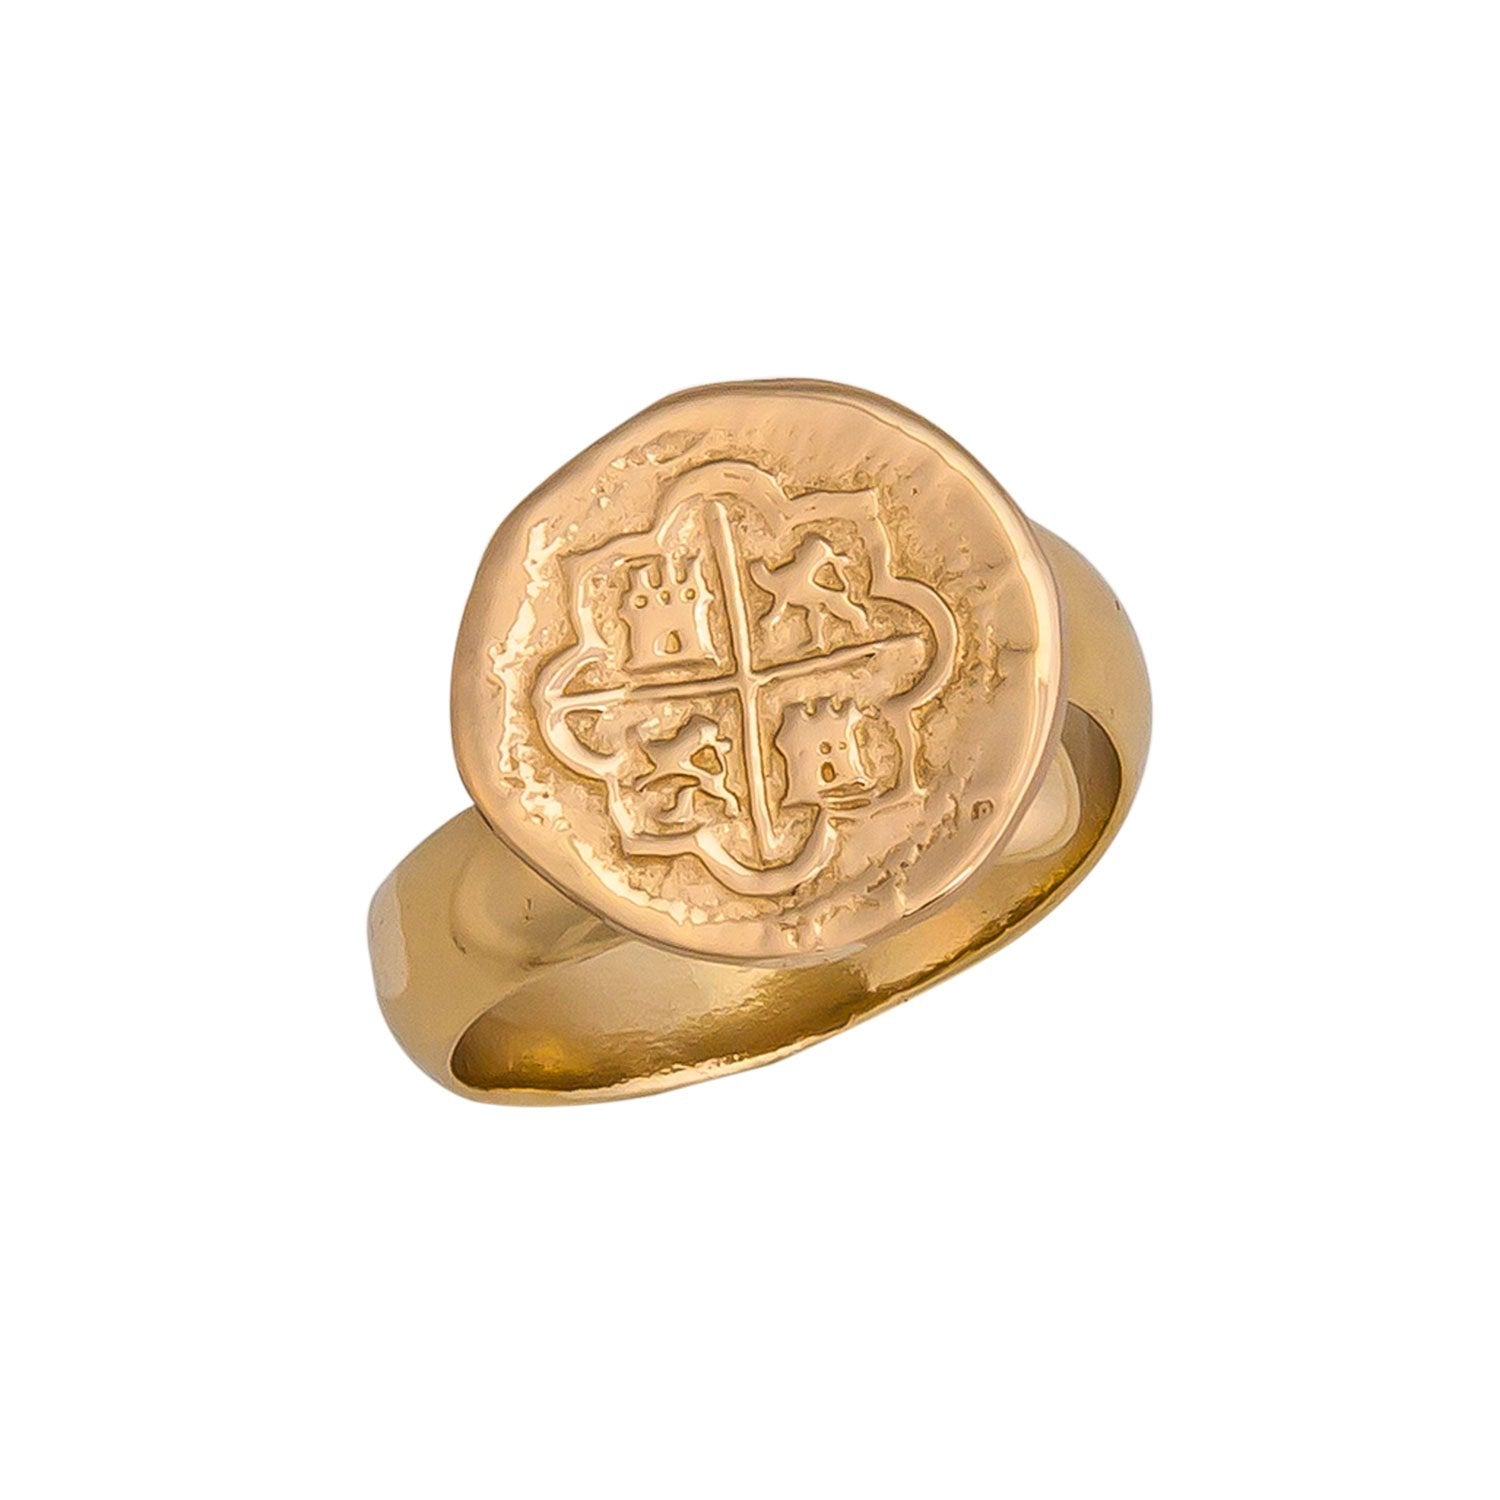 Alchemia Replica Spanish Coin Adjustable Ring